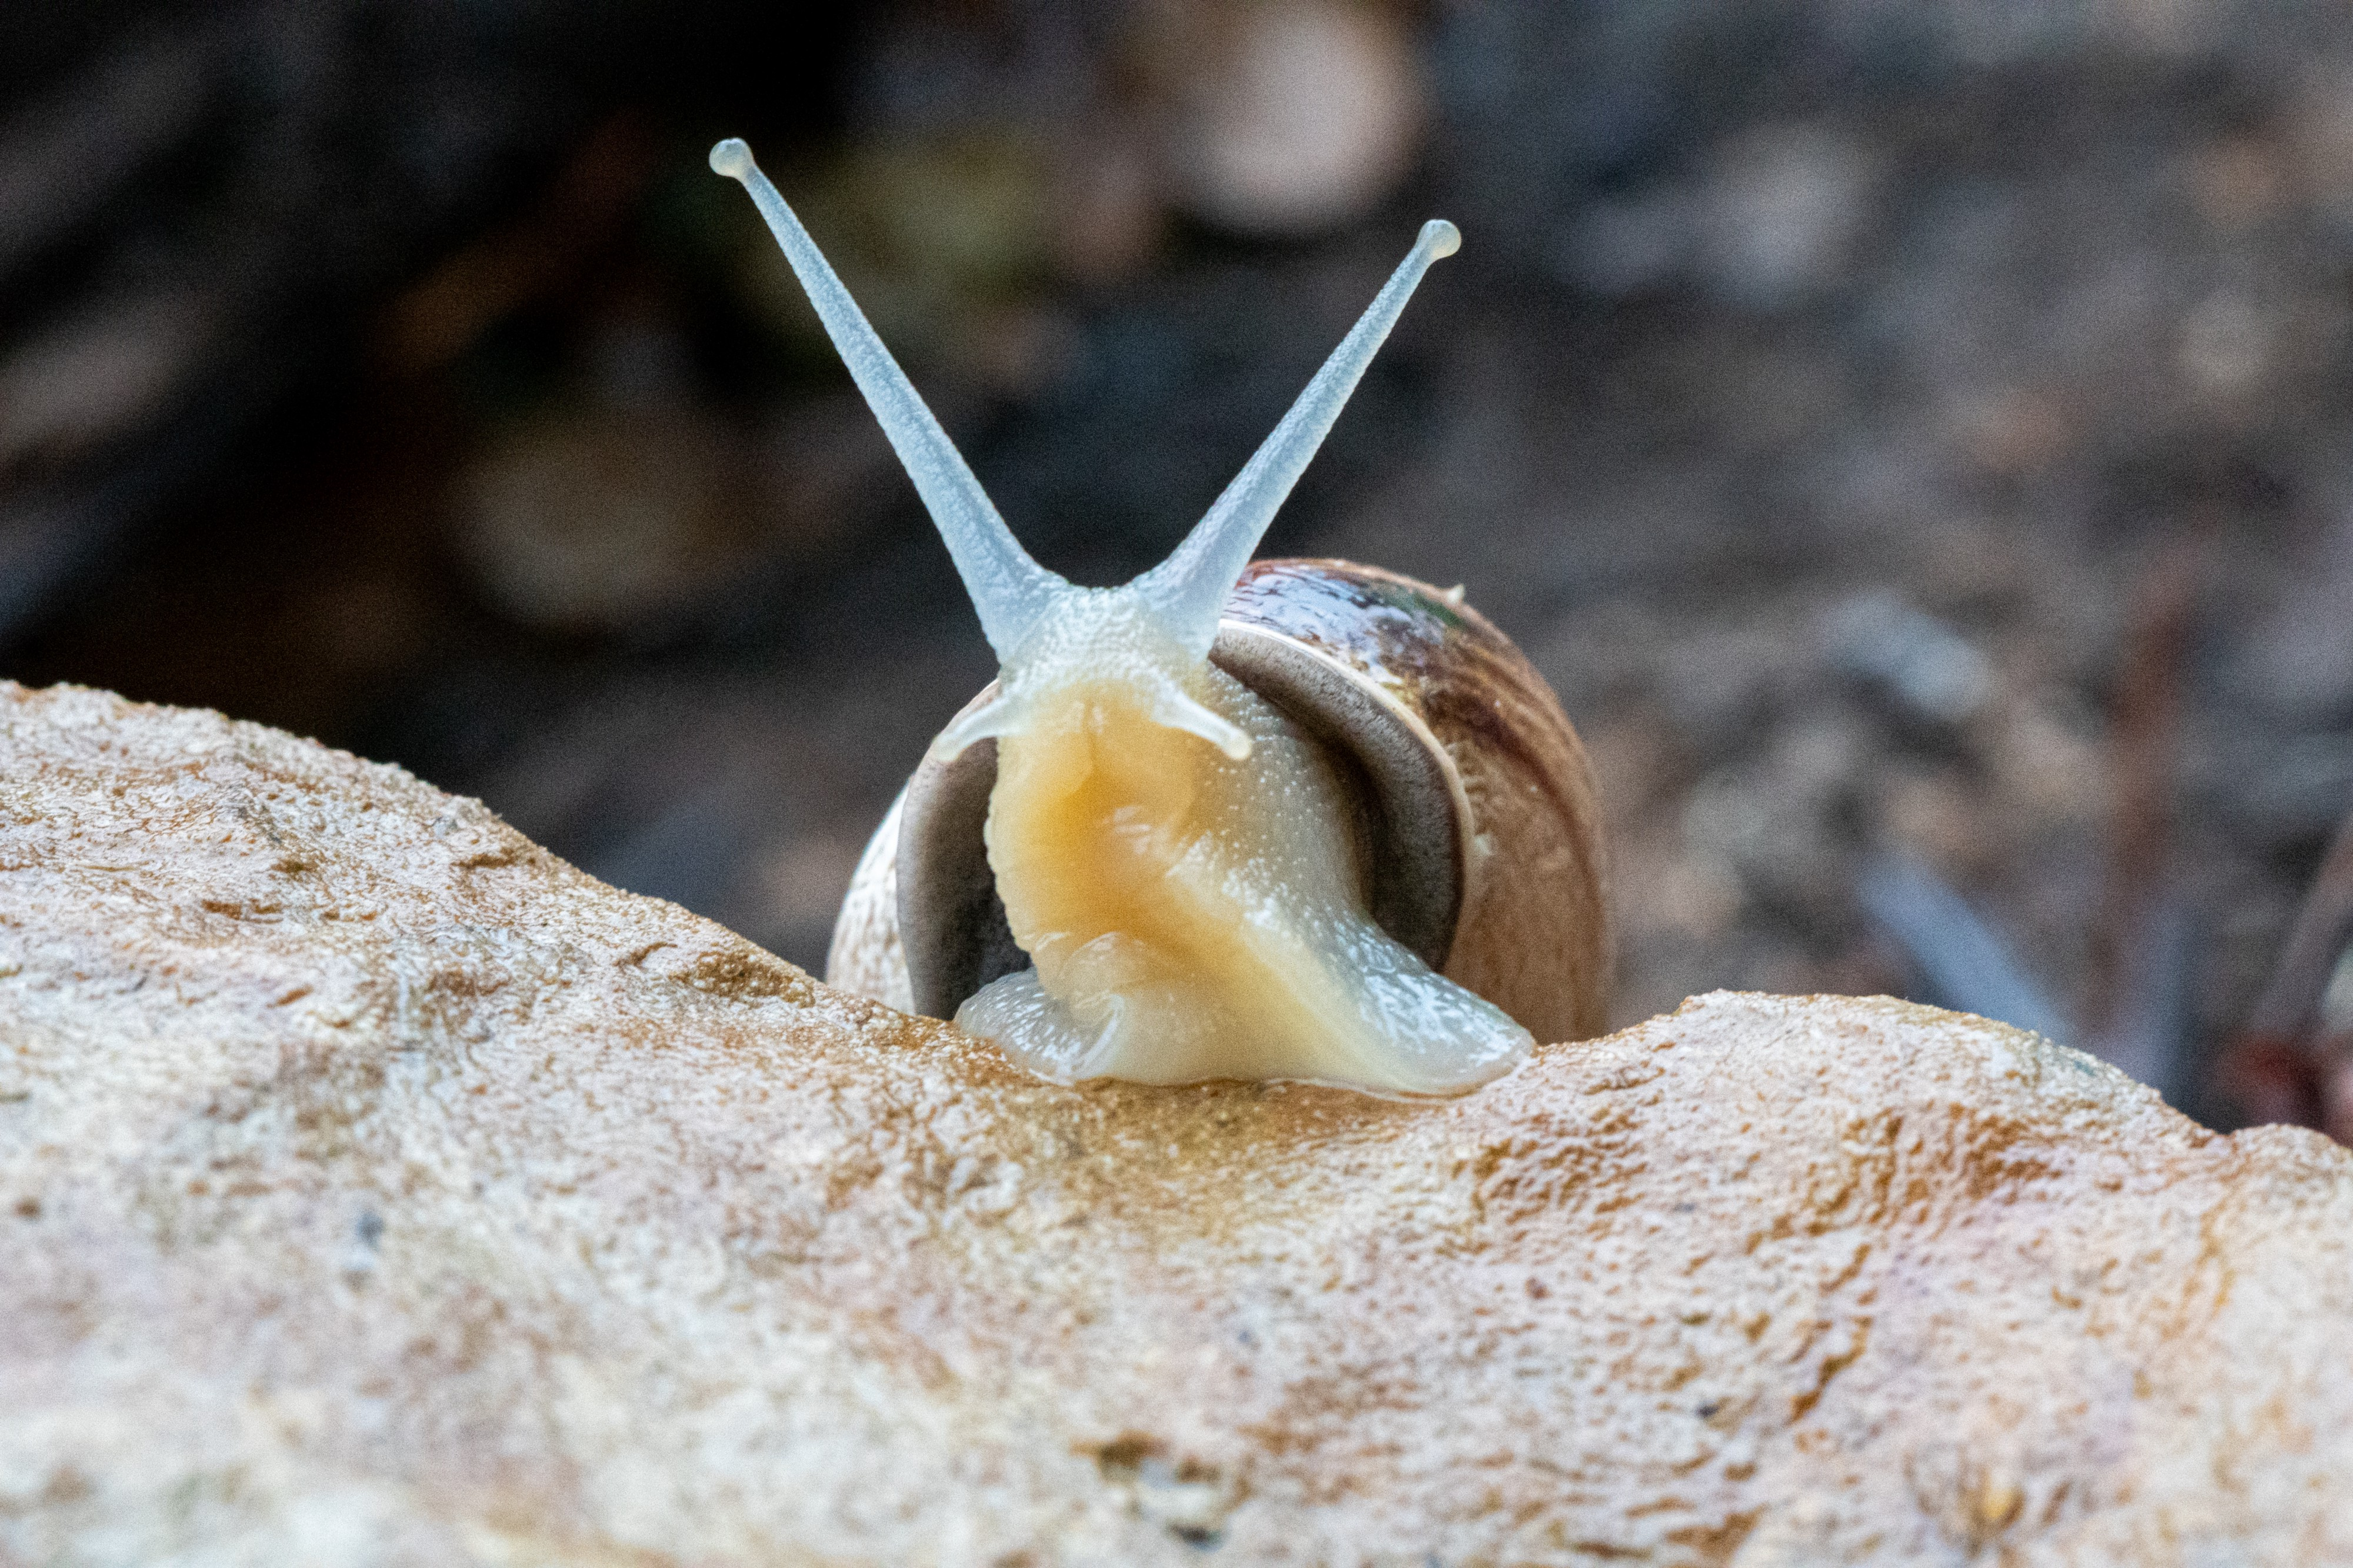 cute little snail looking out at the world of writers and artists hopefully